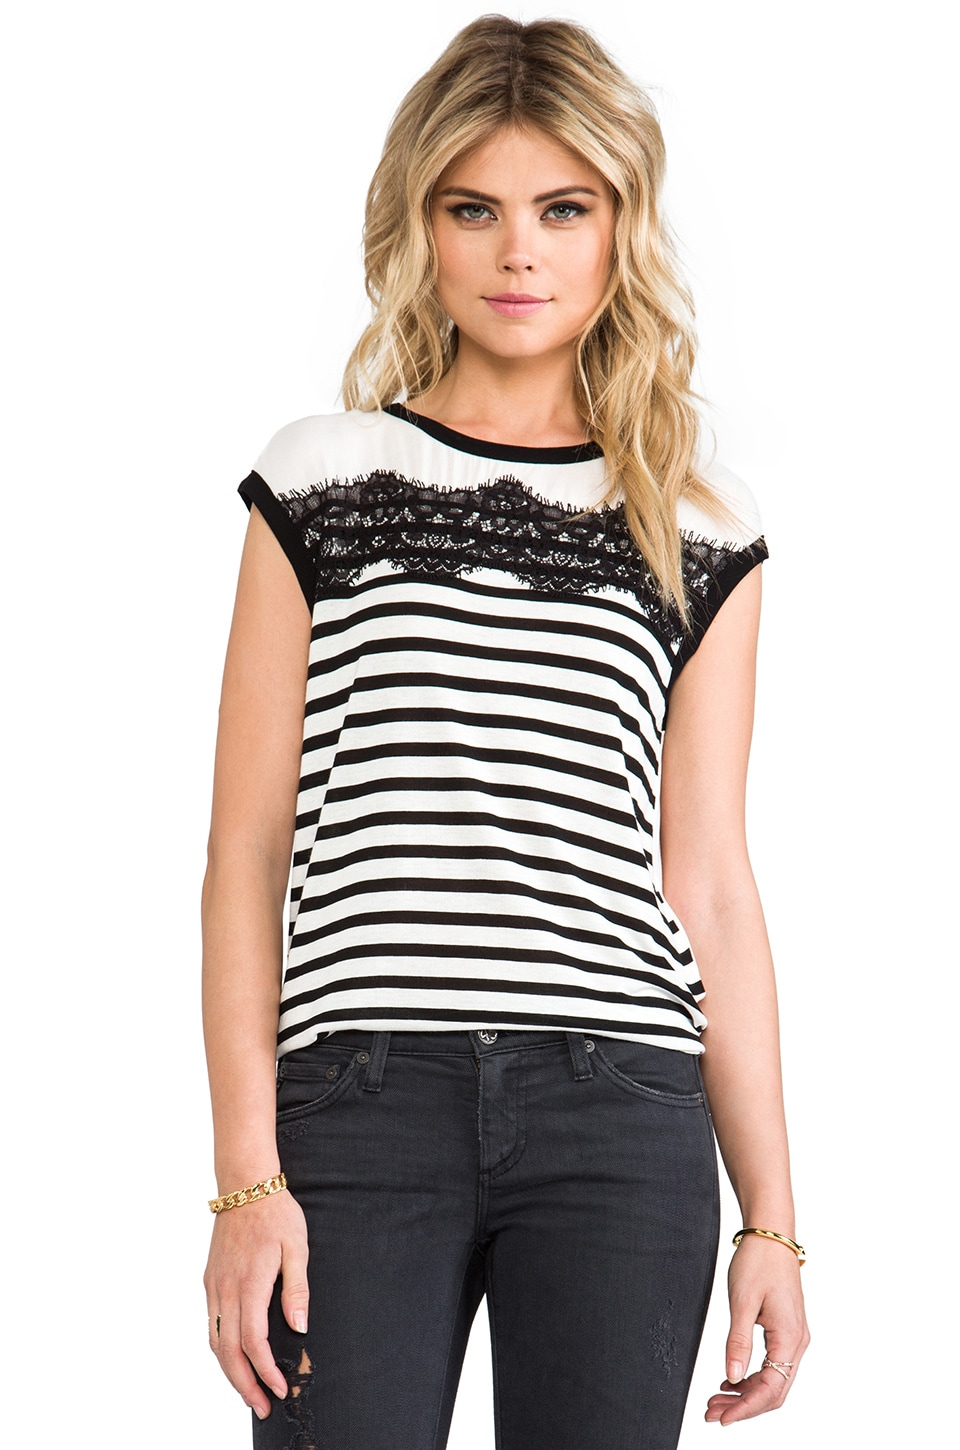 Ella Moss Cara Lace Striped Top in Black